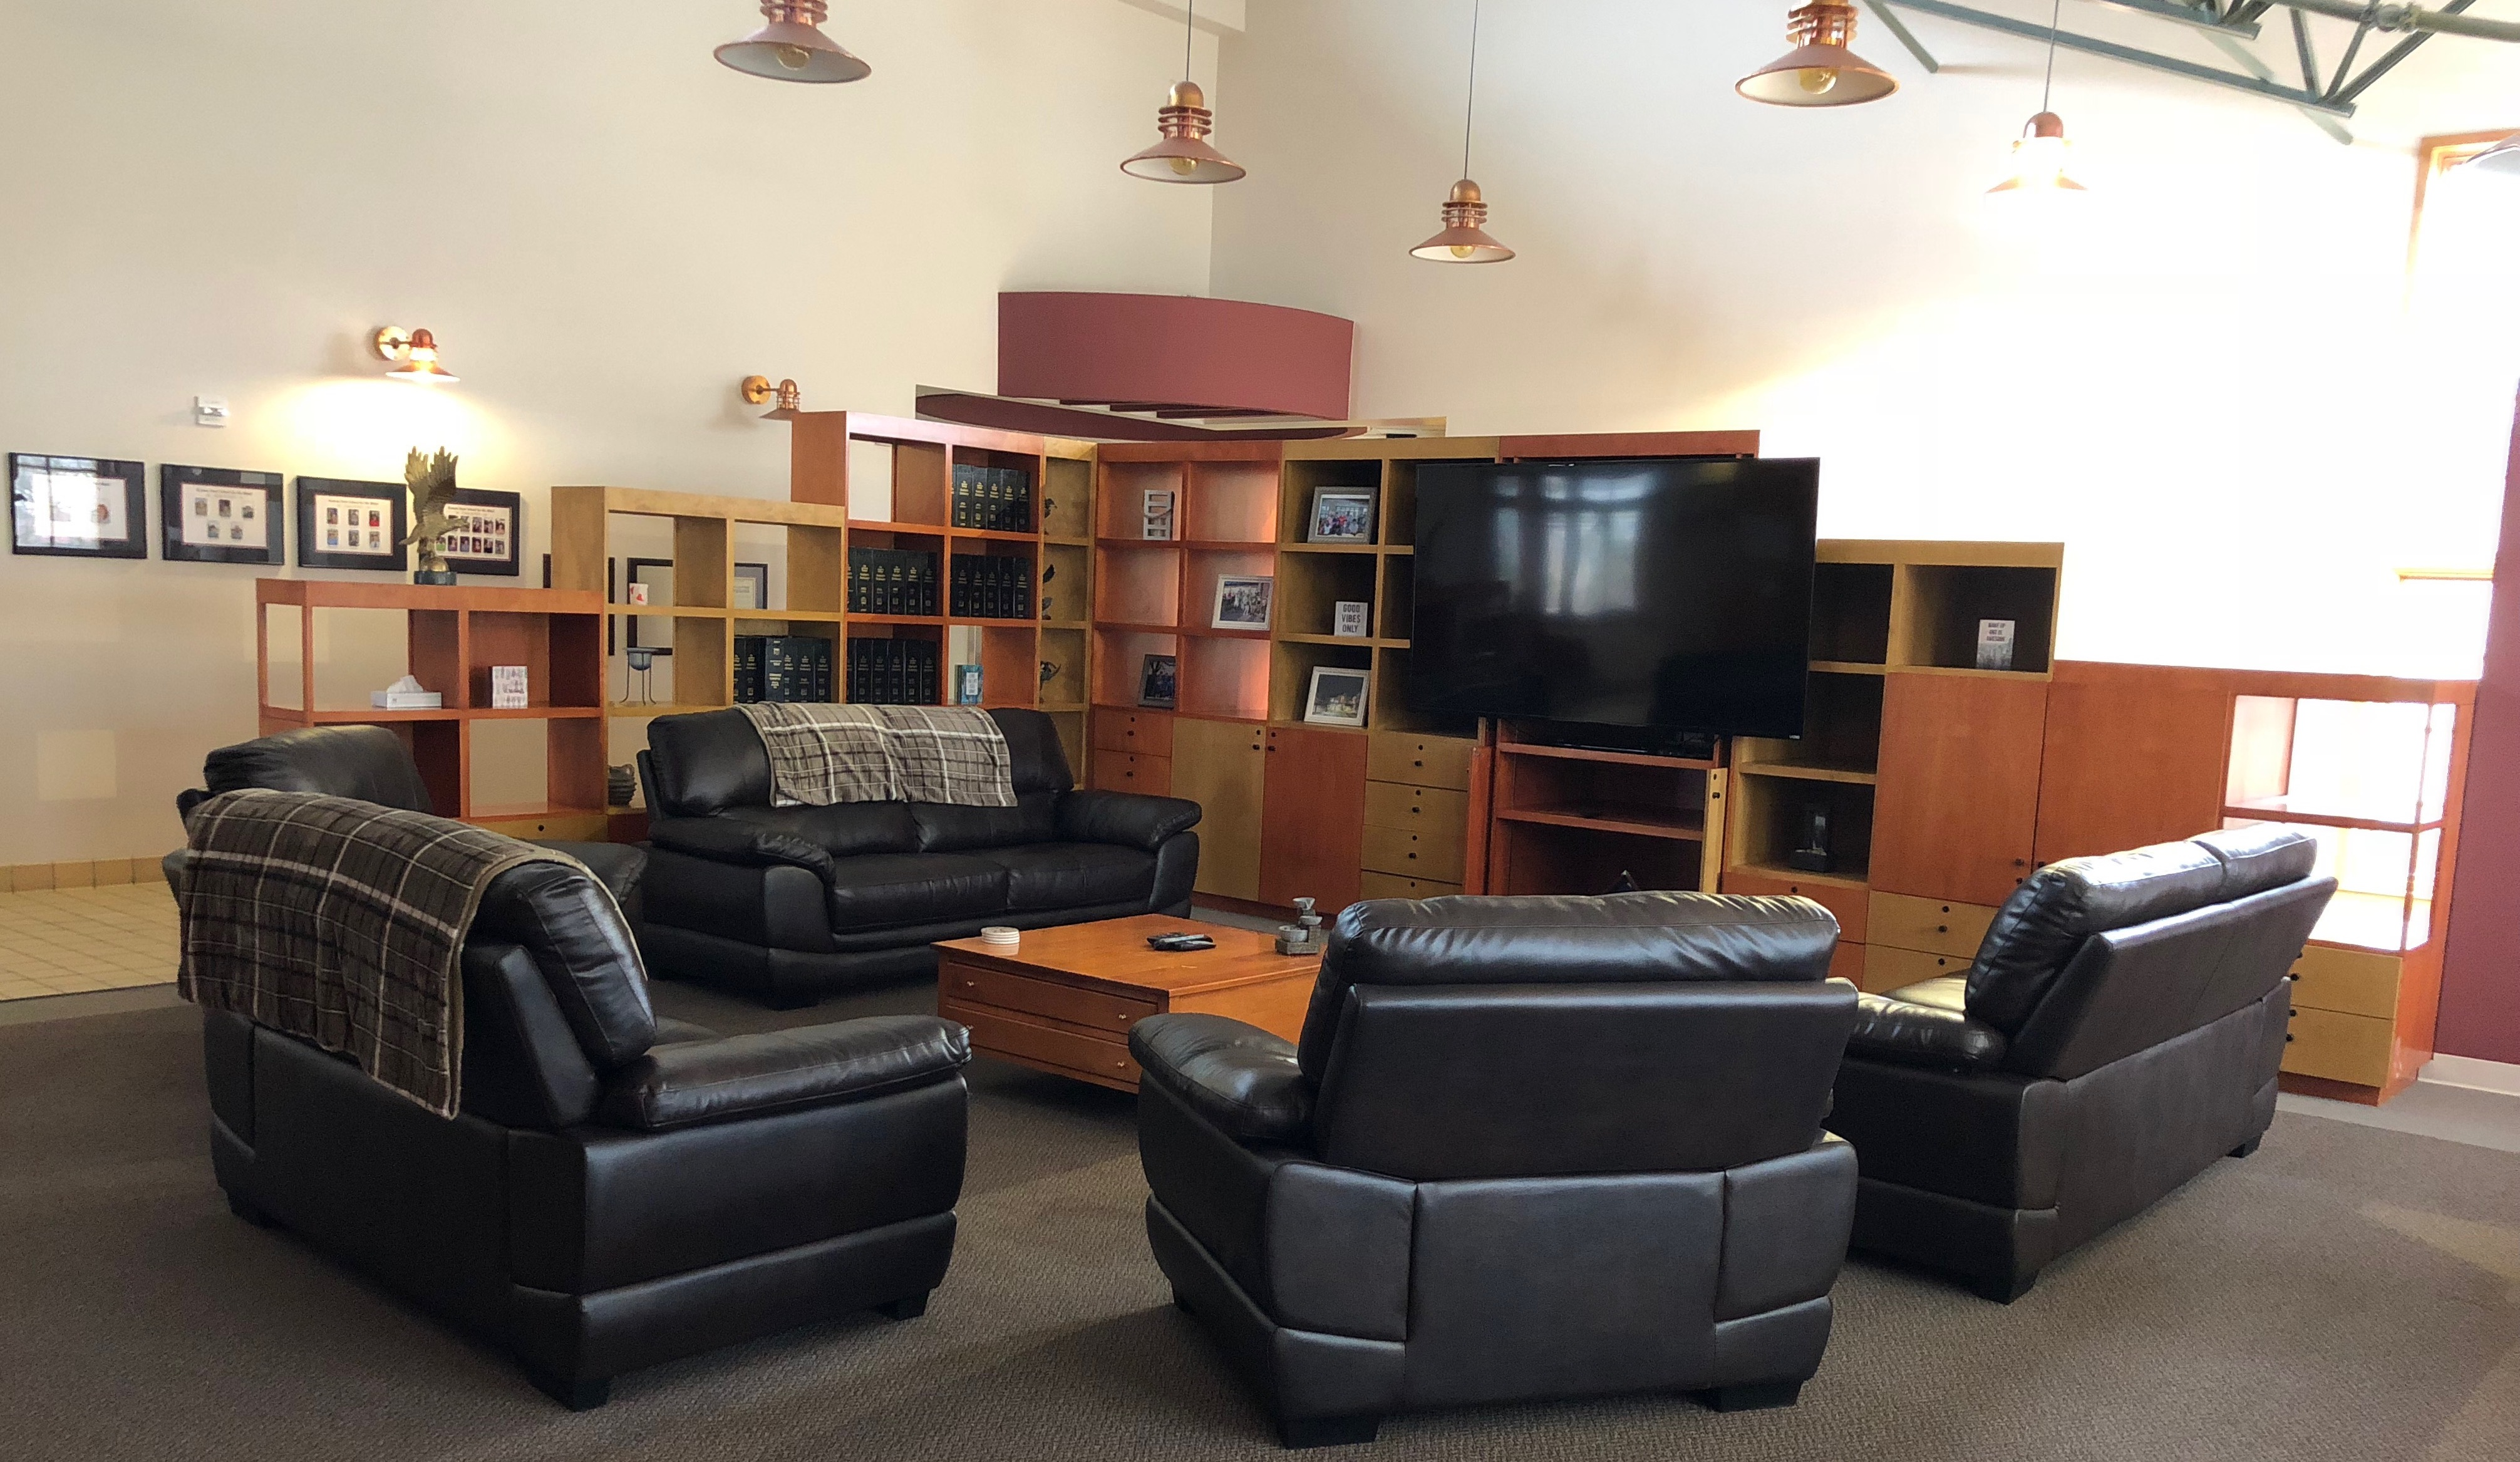 A large lounge with five 2 seat sectional recliners forming a circle. A large square coffee table in the center. A partial wall beyond containing a Large Screen TV, books and stereo system. The Partial Wall is formed by 2 stair stepped shelves - wall units that meet to form a corner. The Large Screen TV to the right and books to the left.